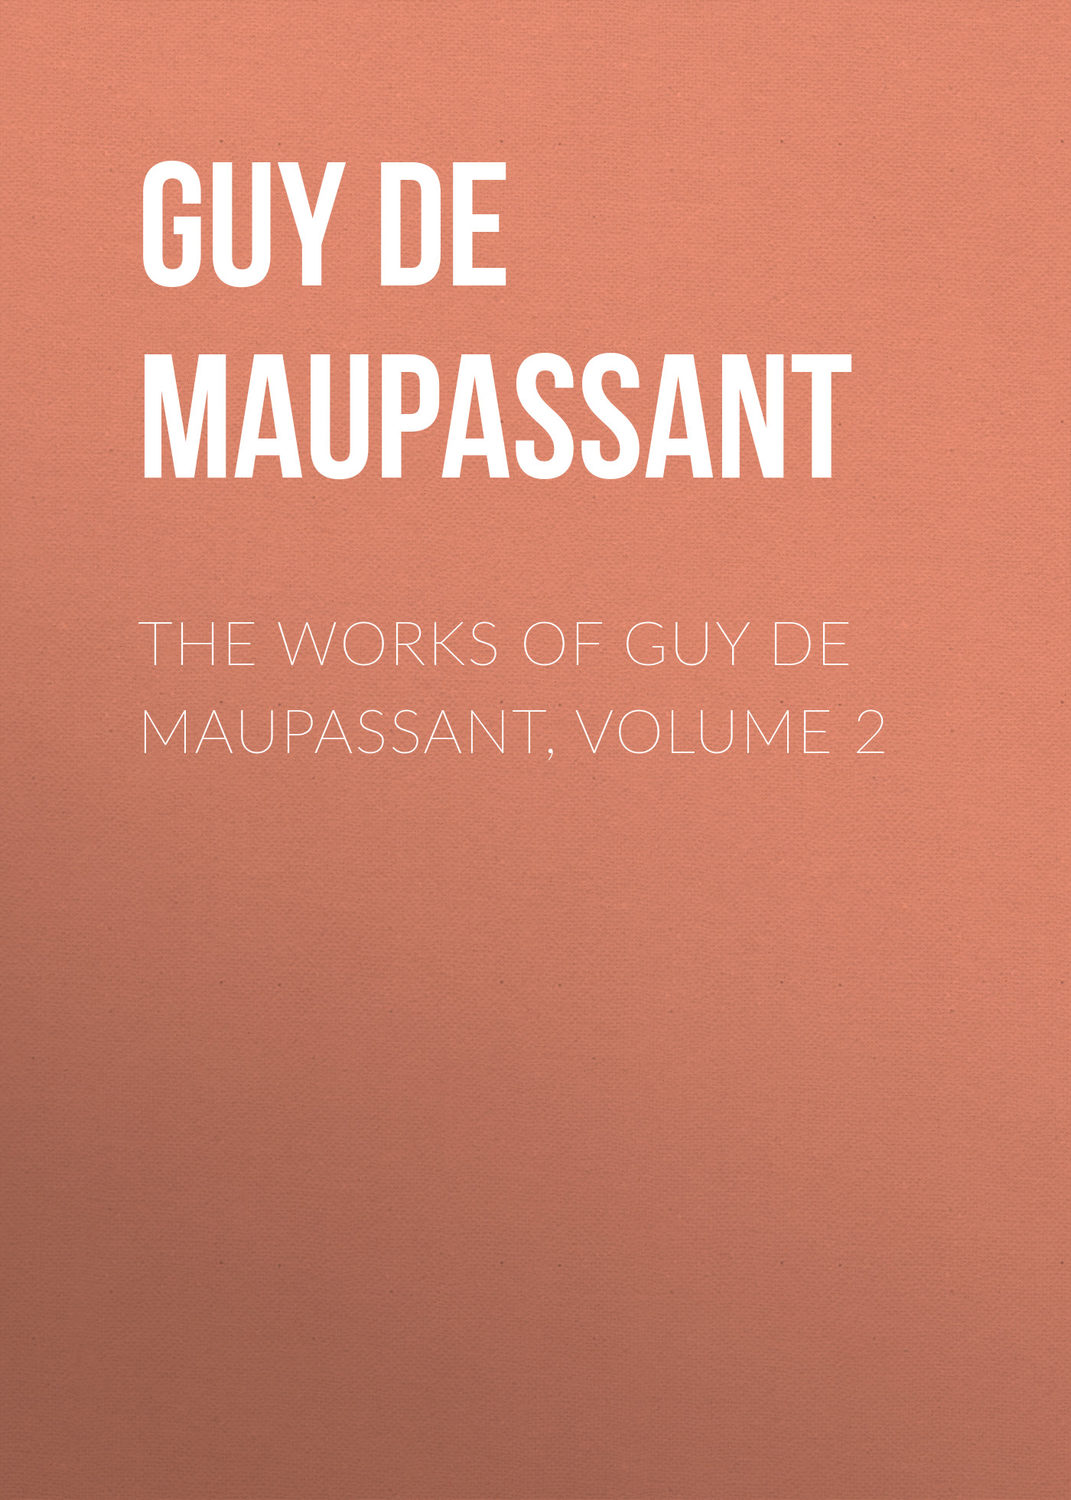 a discussion on the influence on guy de maupassant on the writings of kate chopin Advanced unit 1 advanced unit 5 the necklace by guy de maupassant go over summary rubric choose 3 stories to read by poe or kate chopin--use.